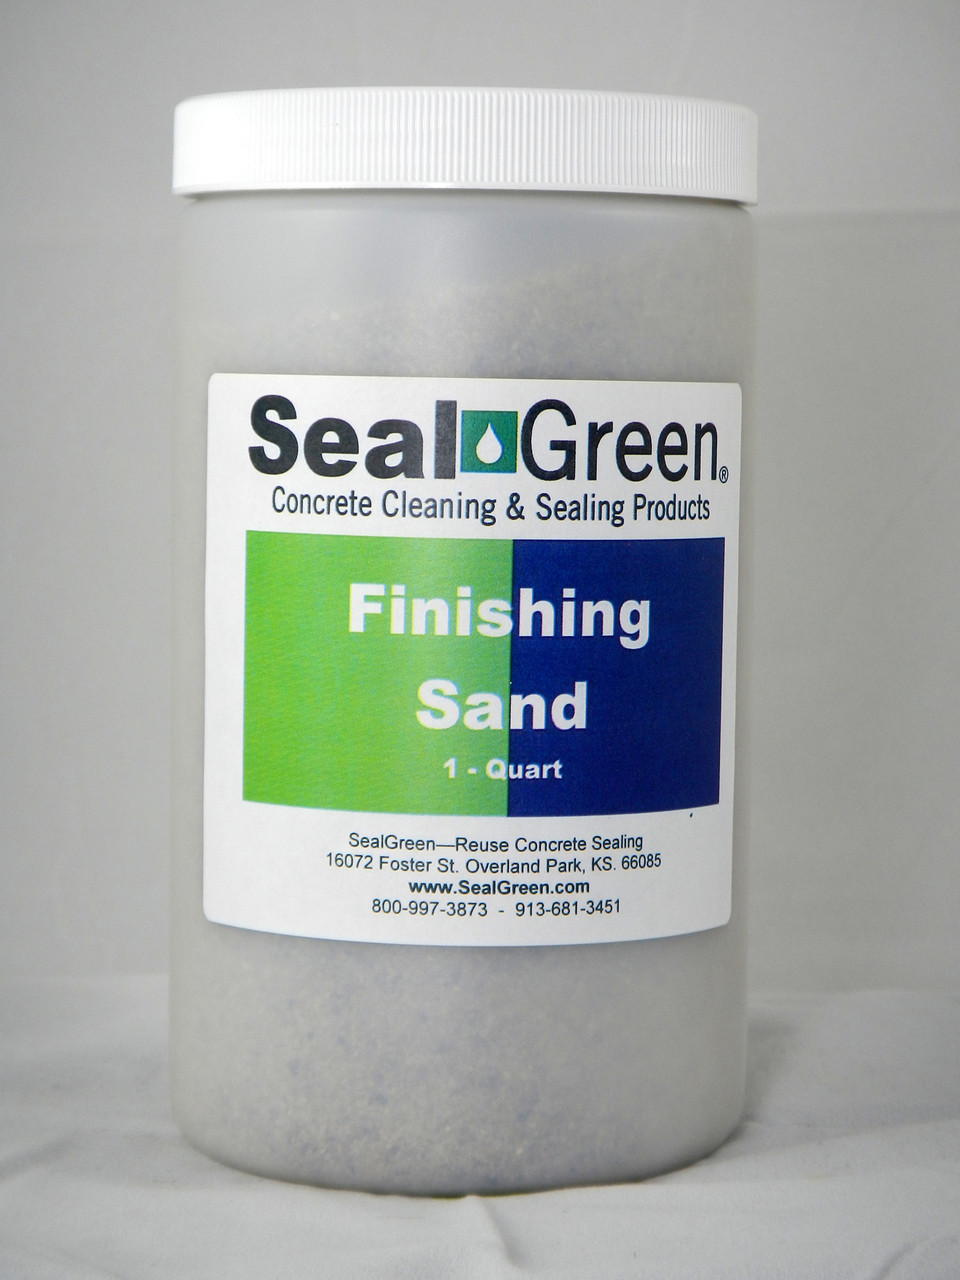 Finishing Sand design to protect fresh and cure caulk repairs.